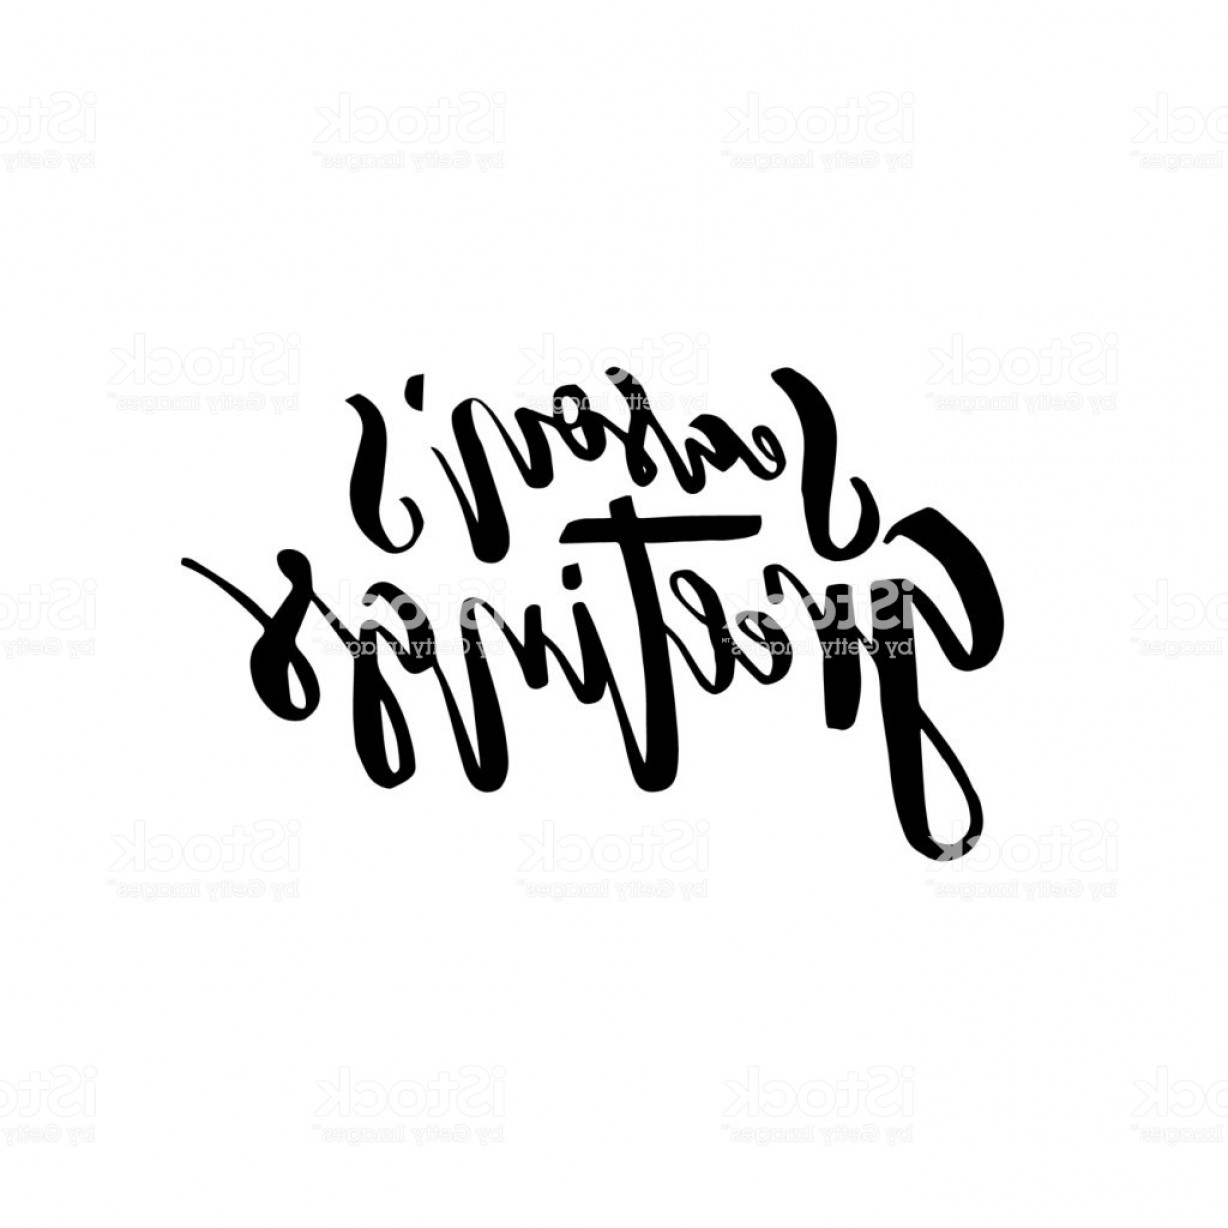 Season S Greetings Vector Free: Merry Christmas Card With Calligraphy Seasons Greetings Vector Illustration Gm